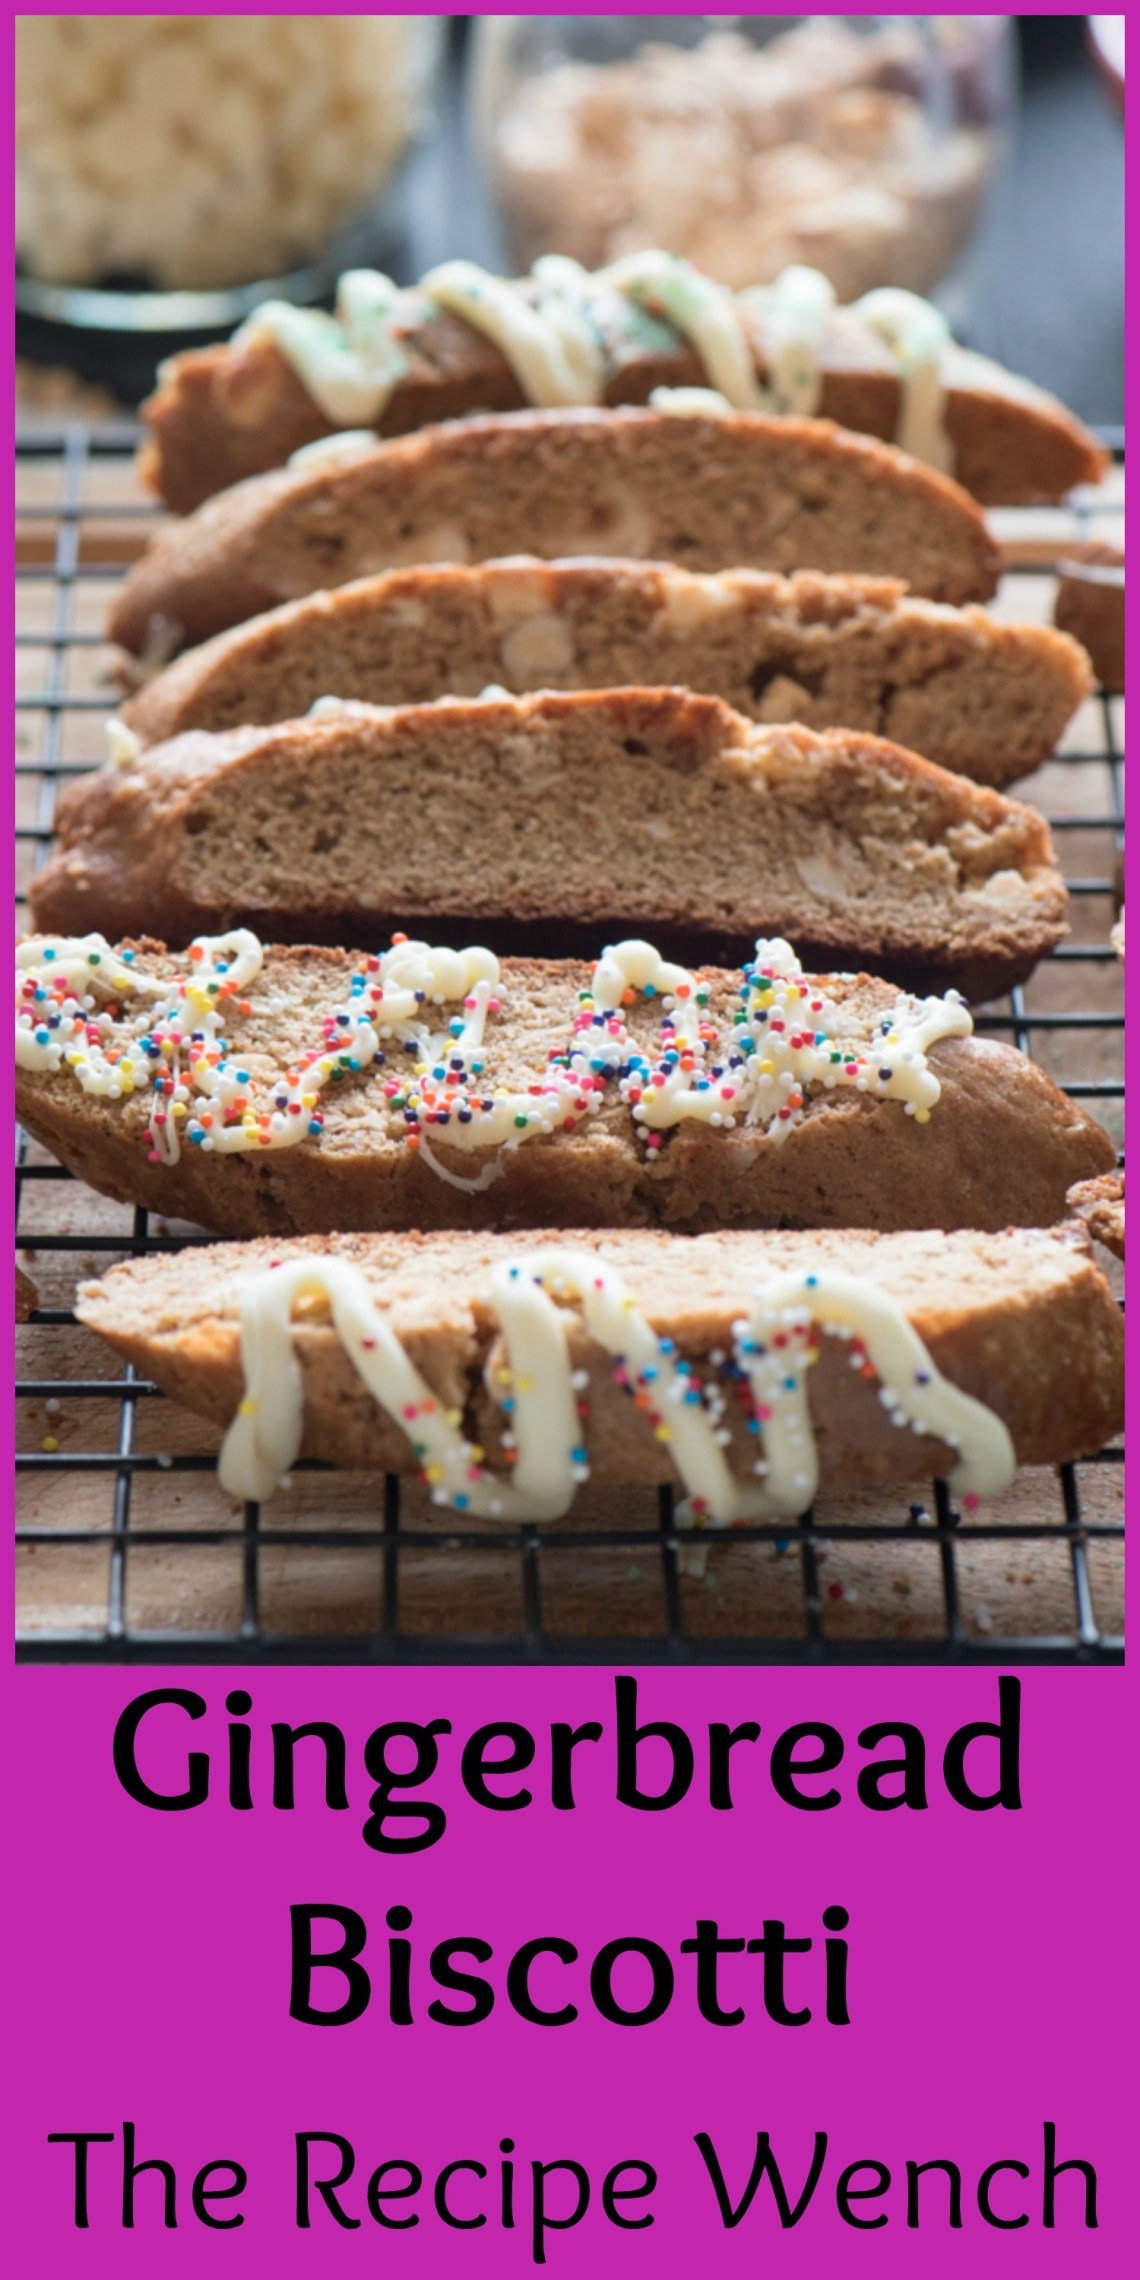 Fun, festive and tasty gingerbread white chocolate biscotti with white chocolate. Pour yourself a glass of milk or cup of coffee and dunk away!  